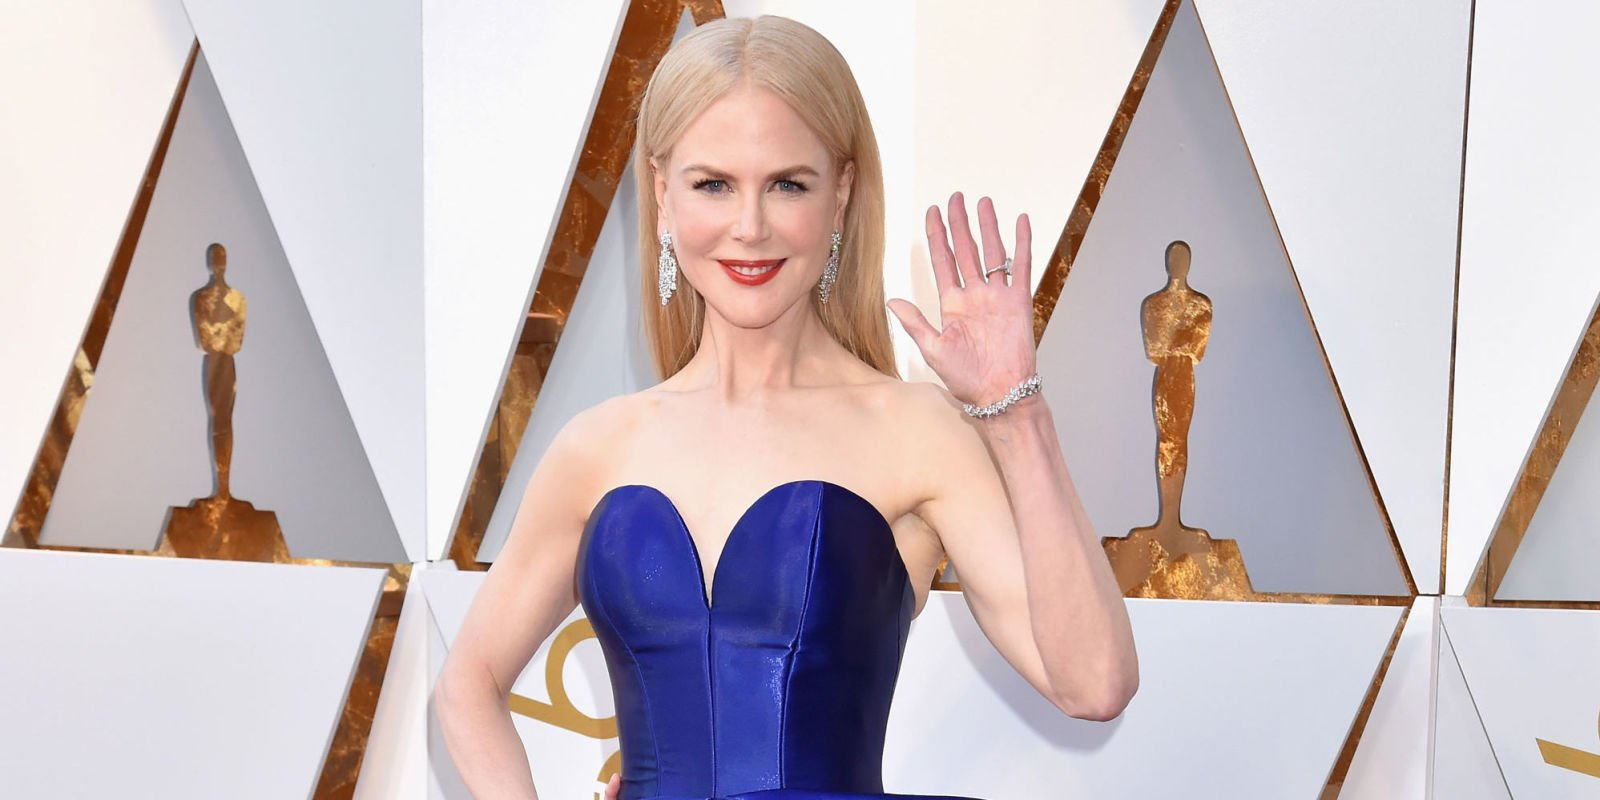 Nicole Kidman reuniting with Big Little Lies writer and HBO for new series The Undoing